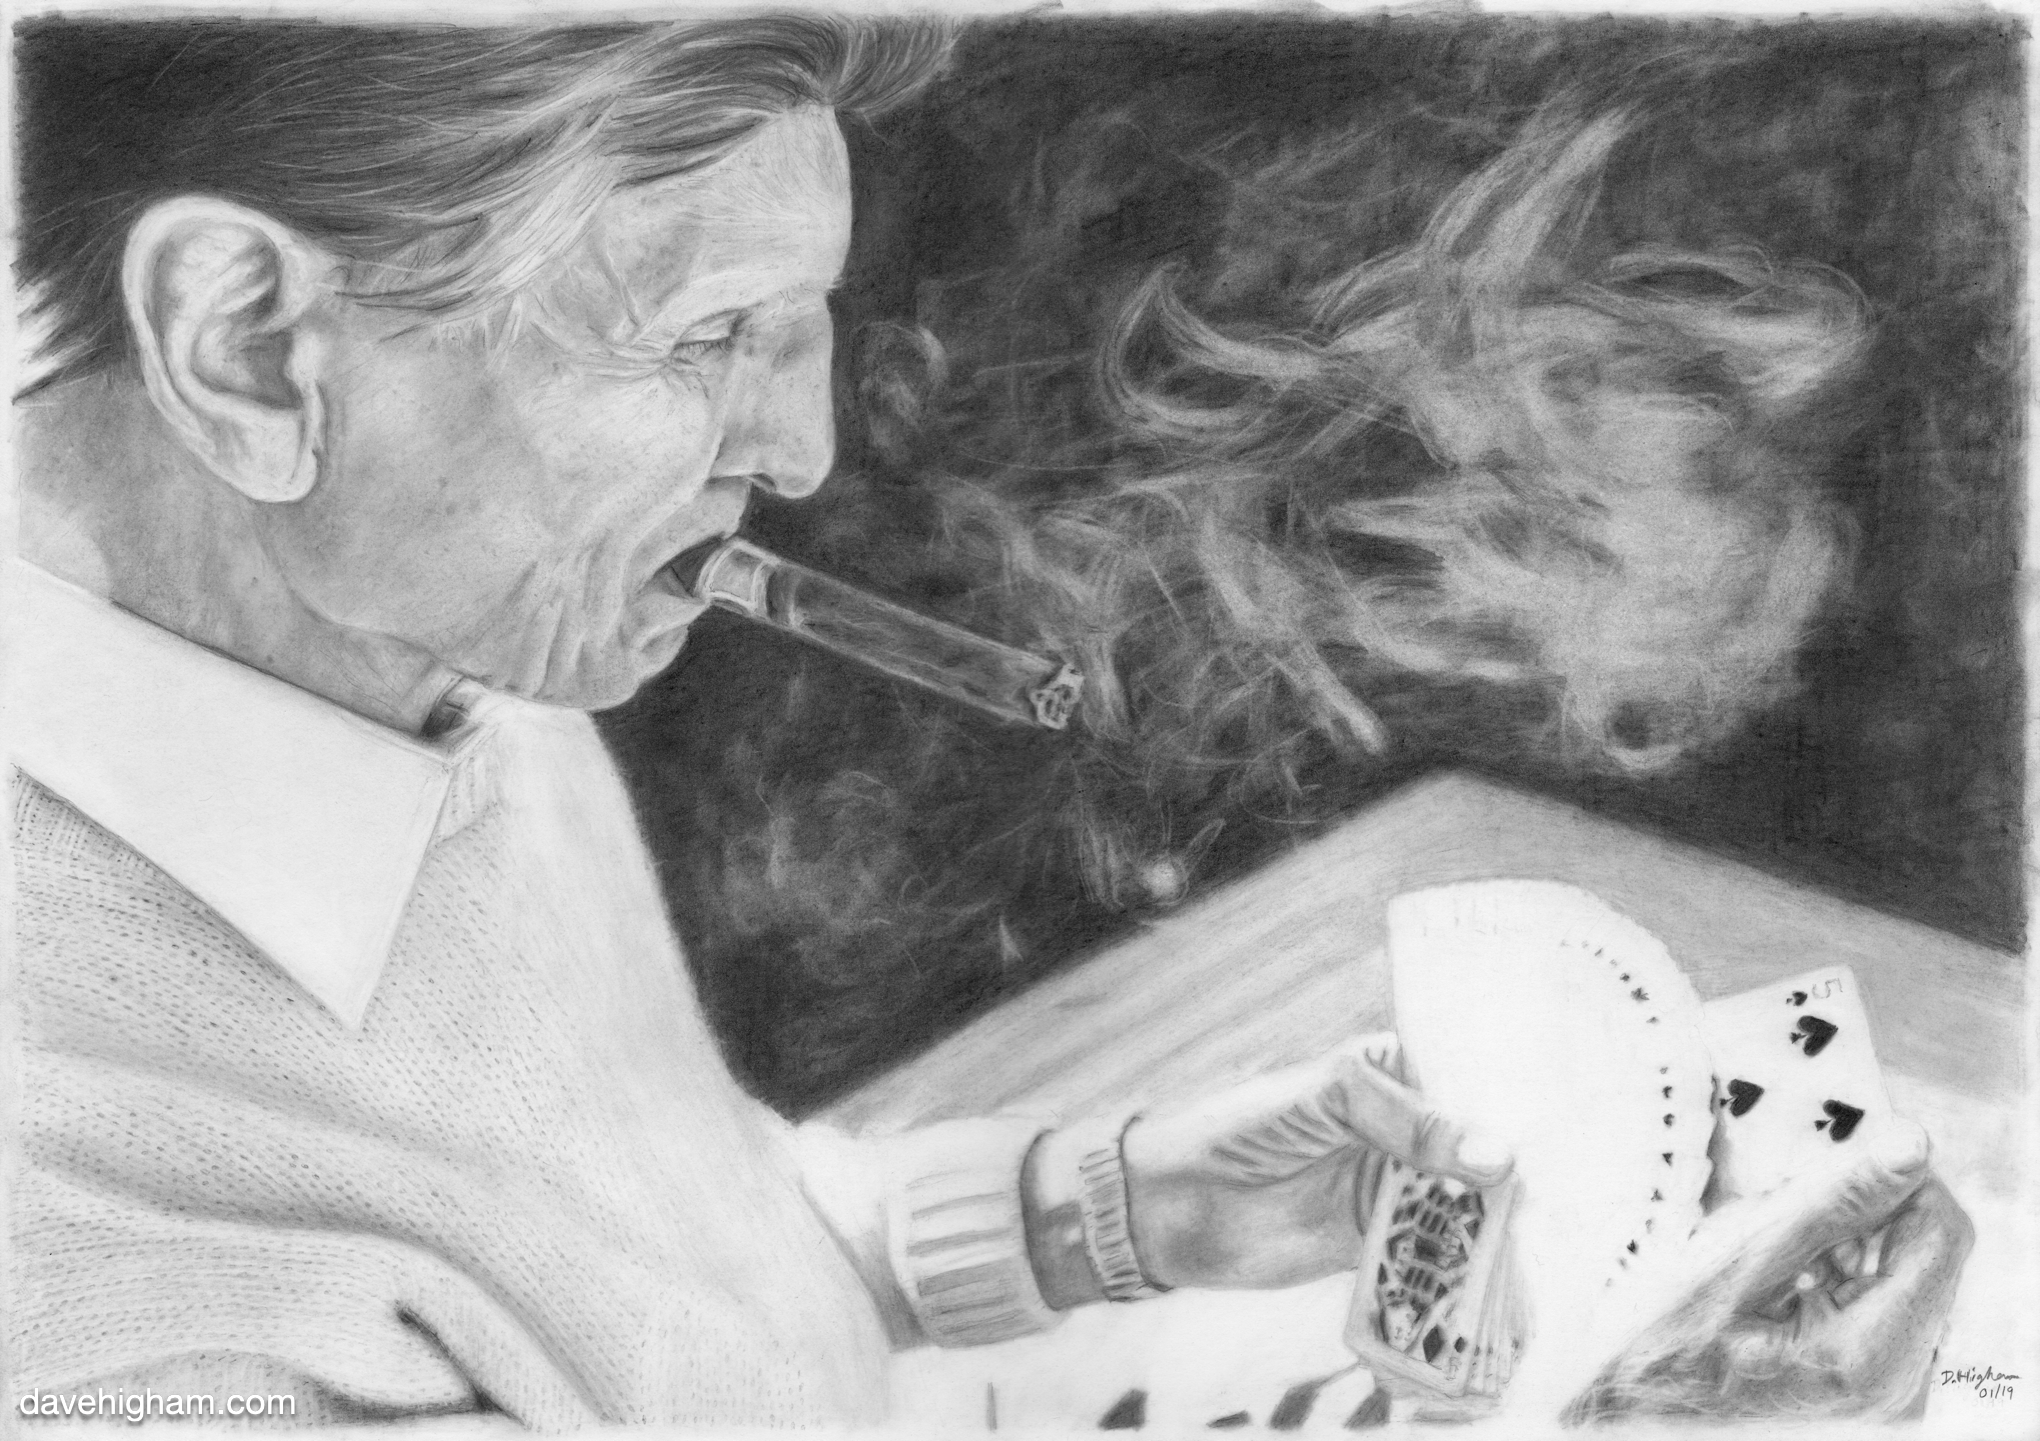 A pencil portrait of the magician Ed Marlo by Dave Higham.